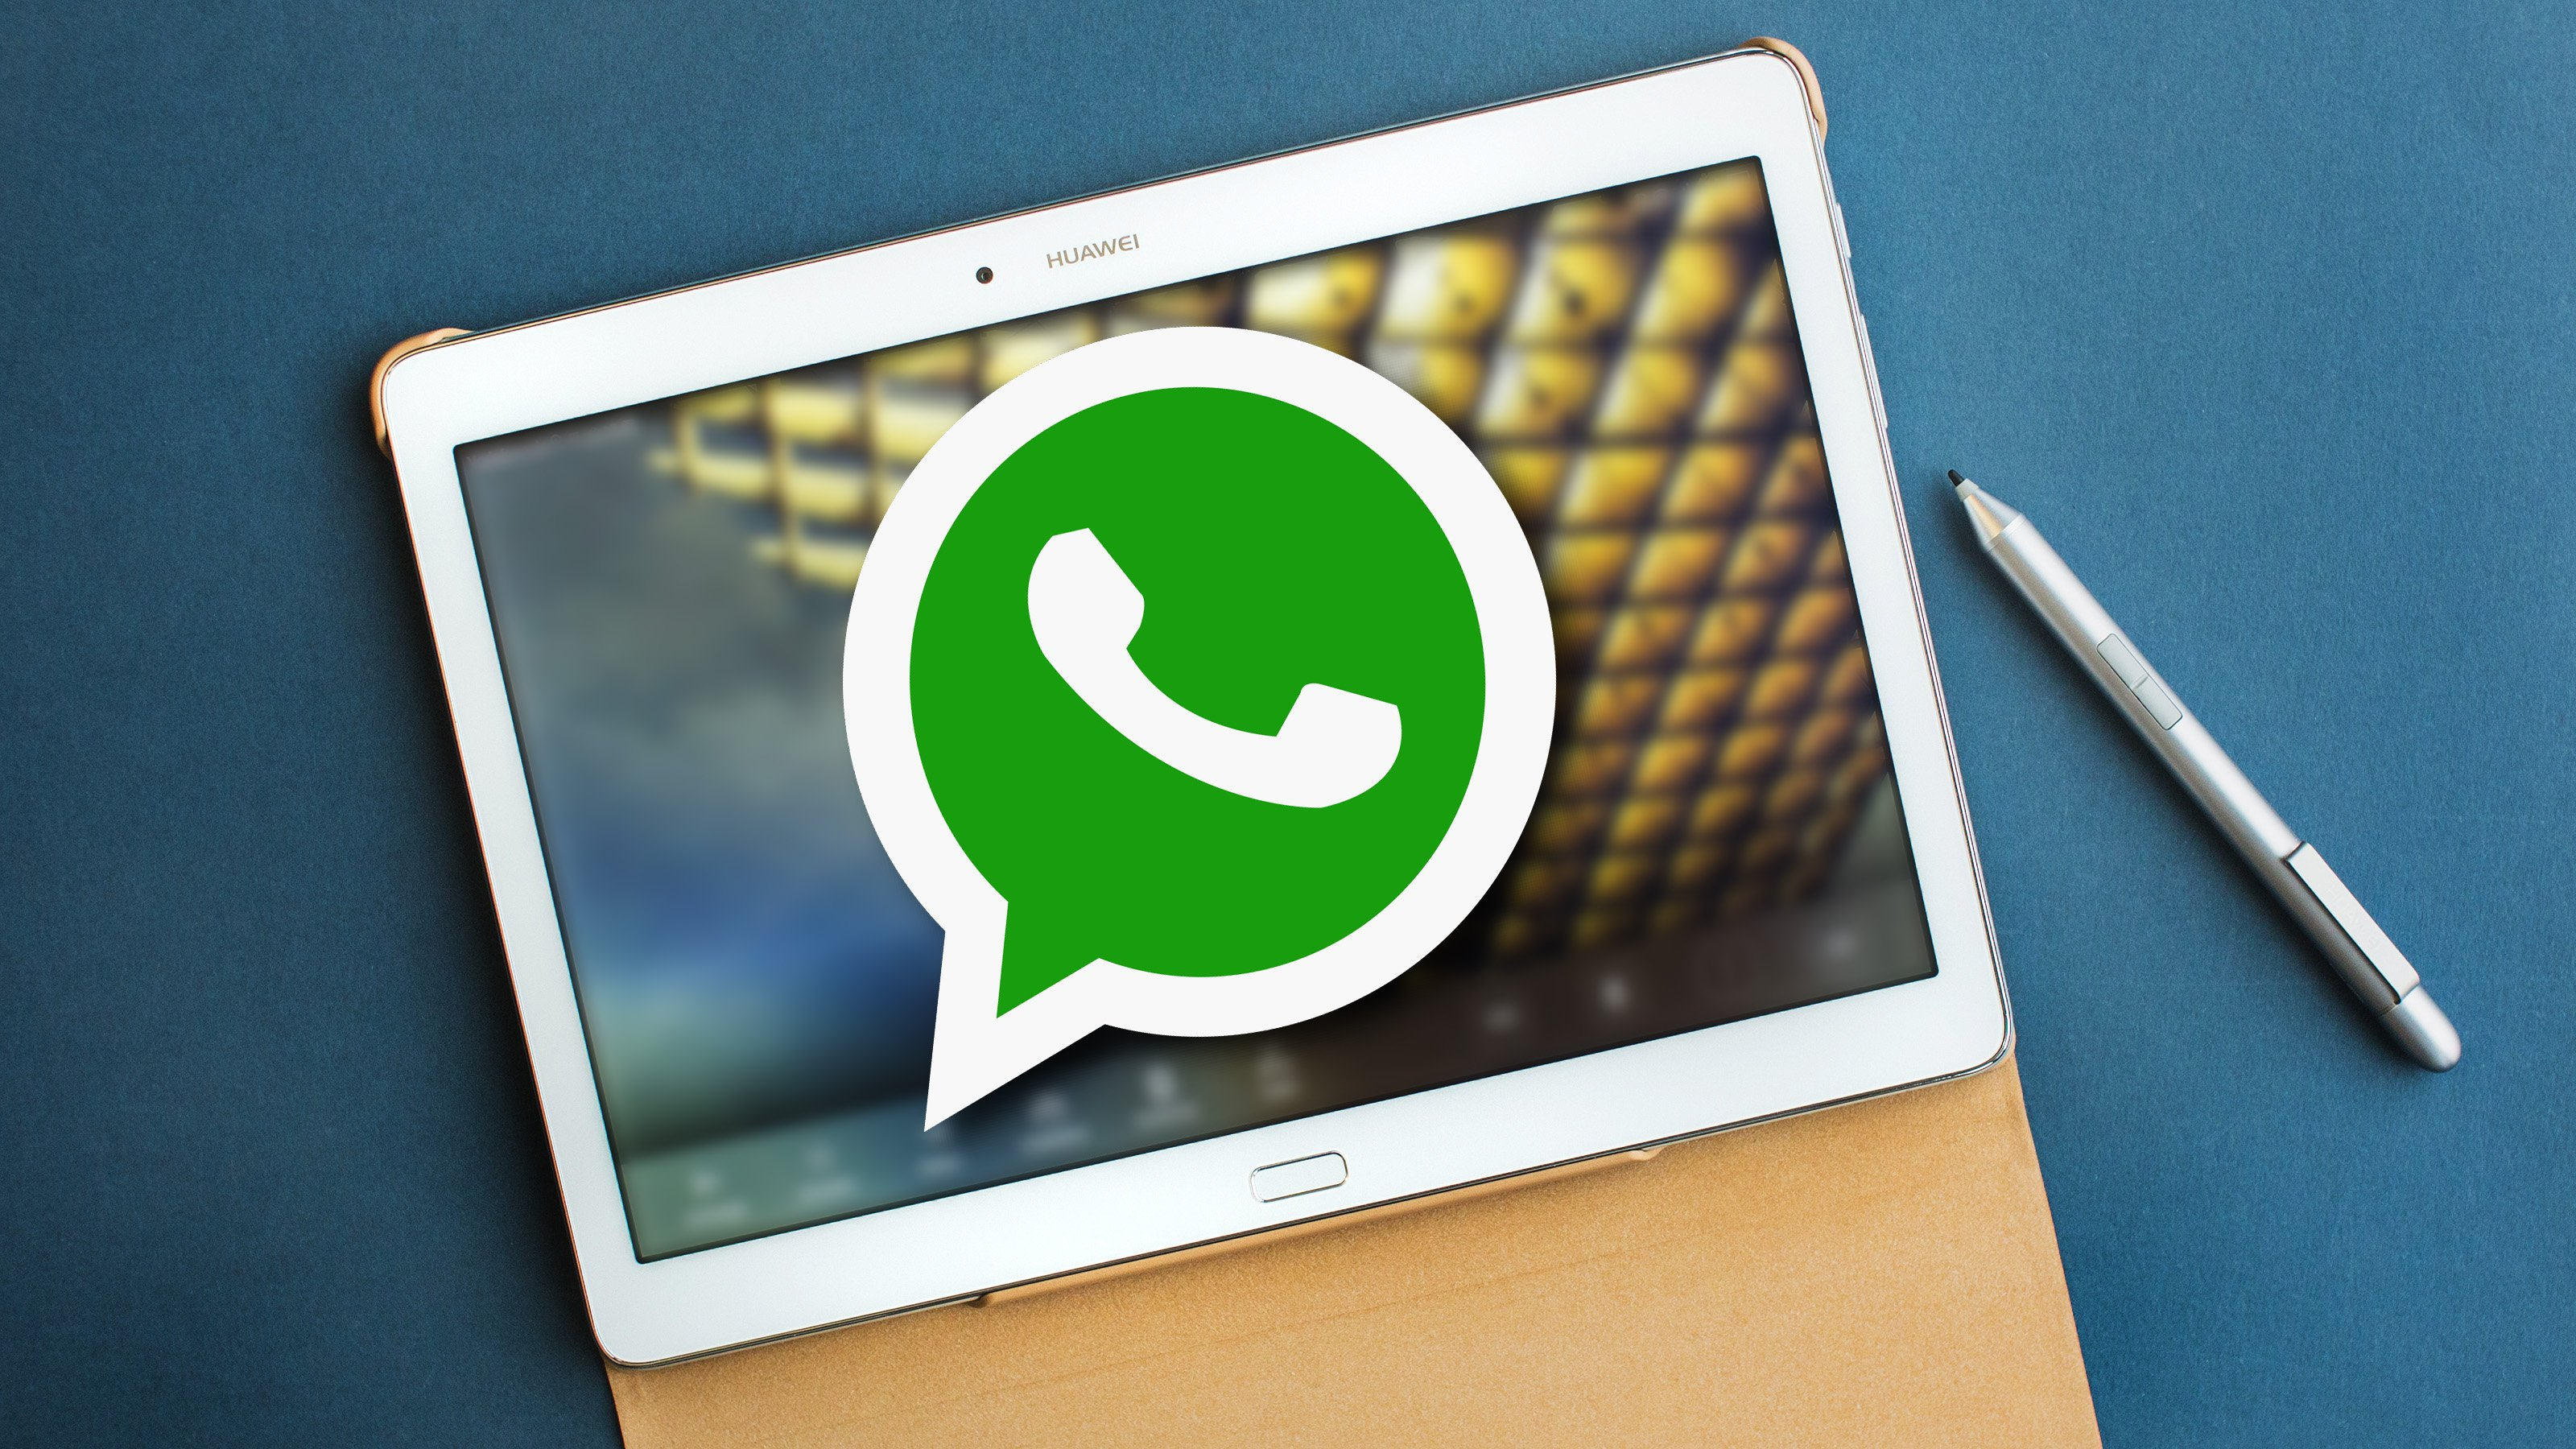 Install whatsapp on tablet without sim | Peatix